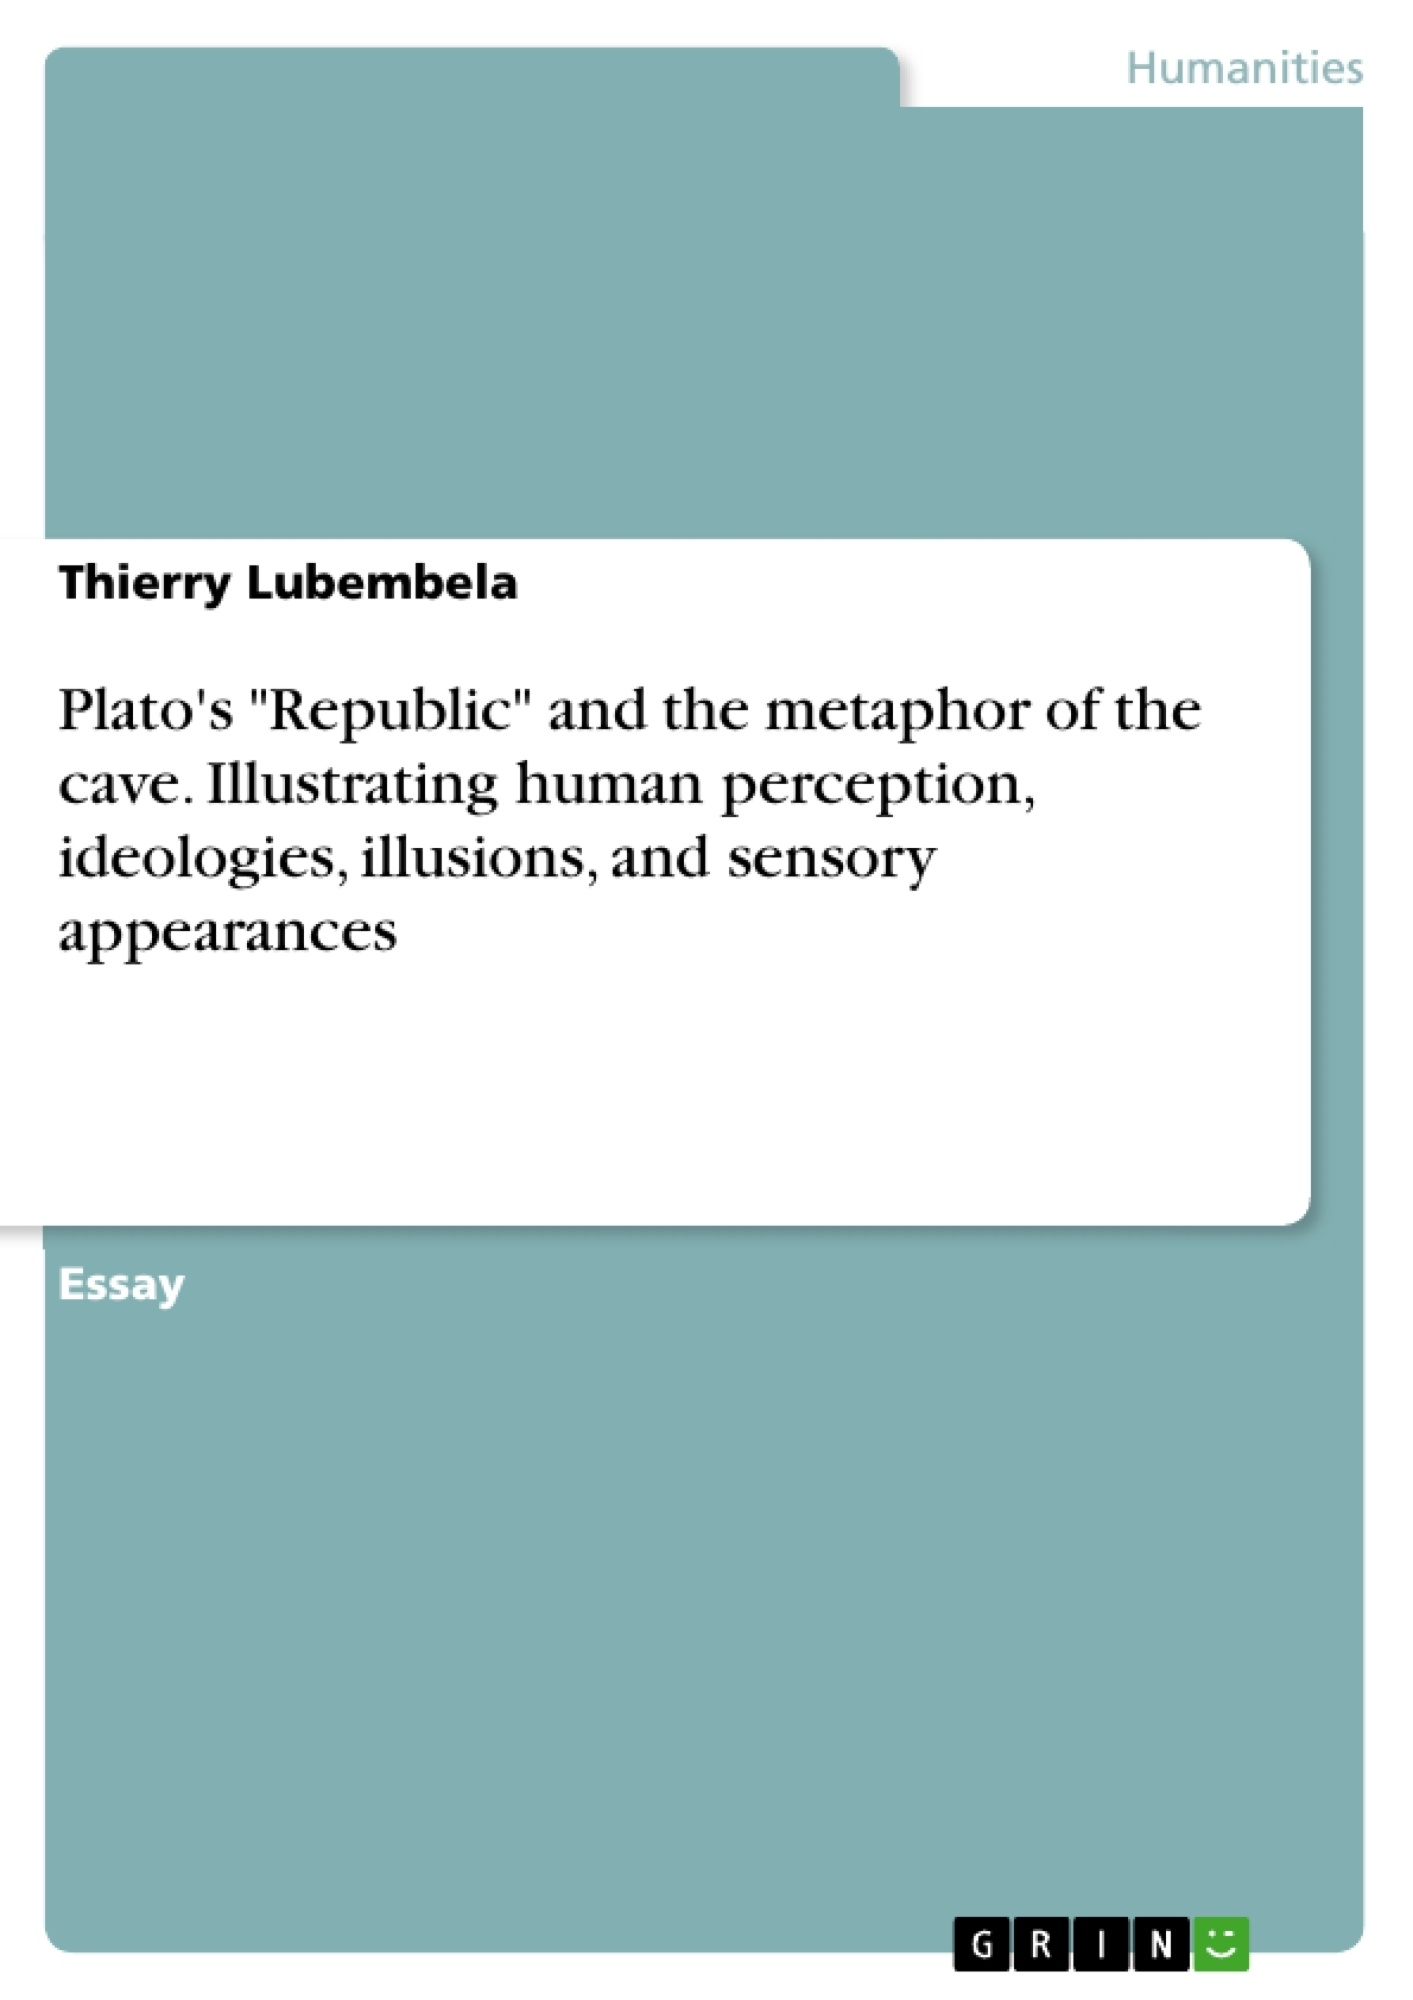 Allegory of the cave summary essays SlideShare